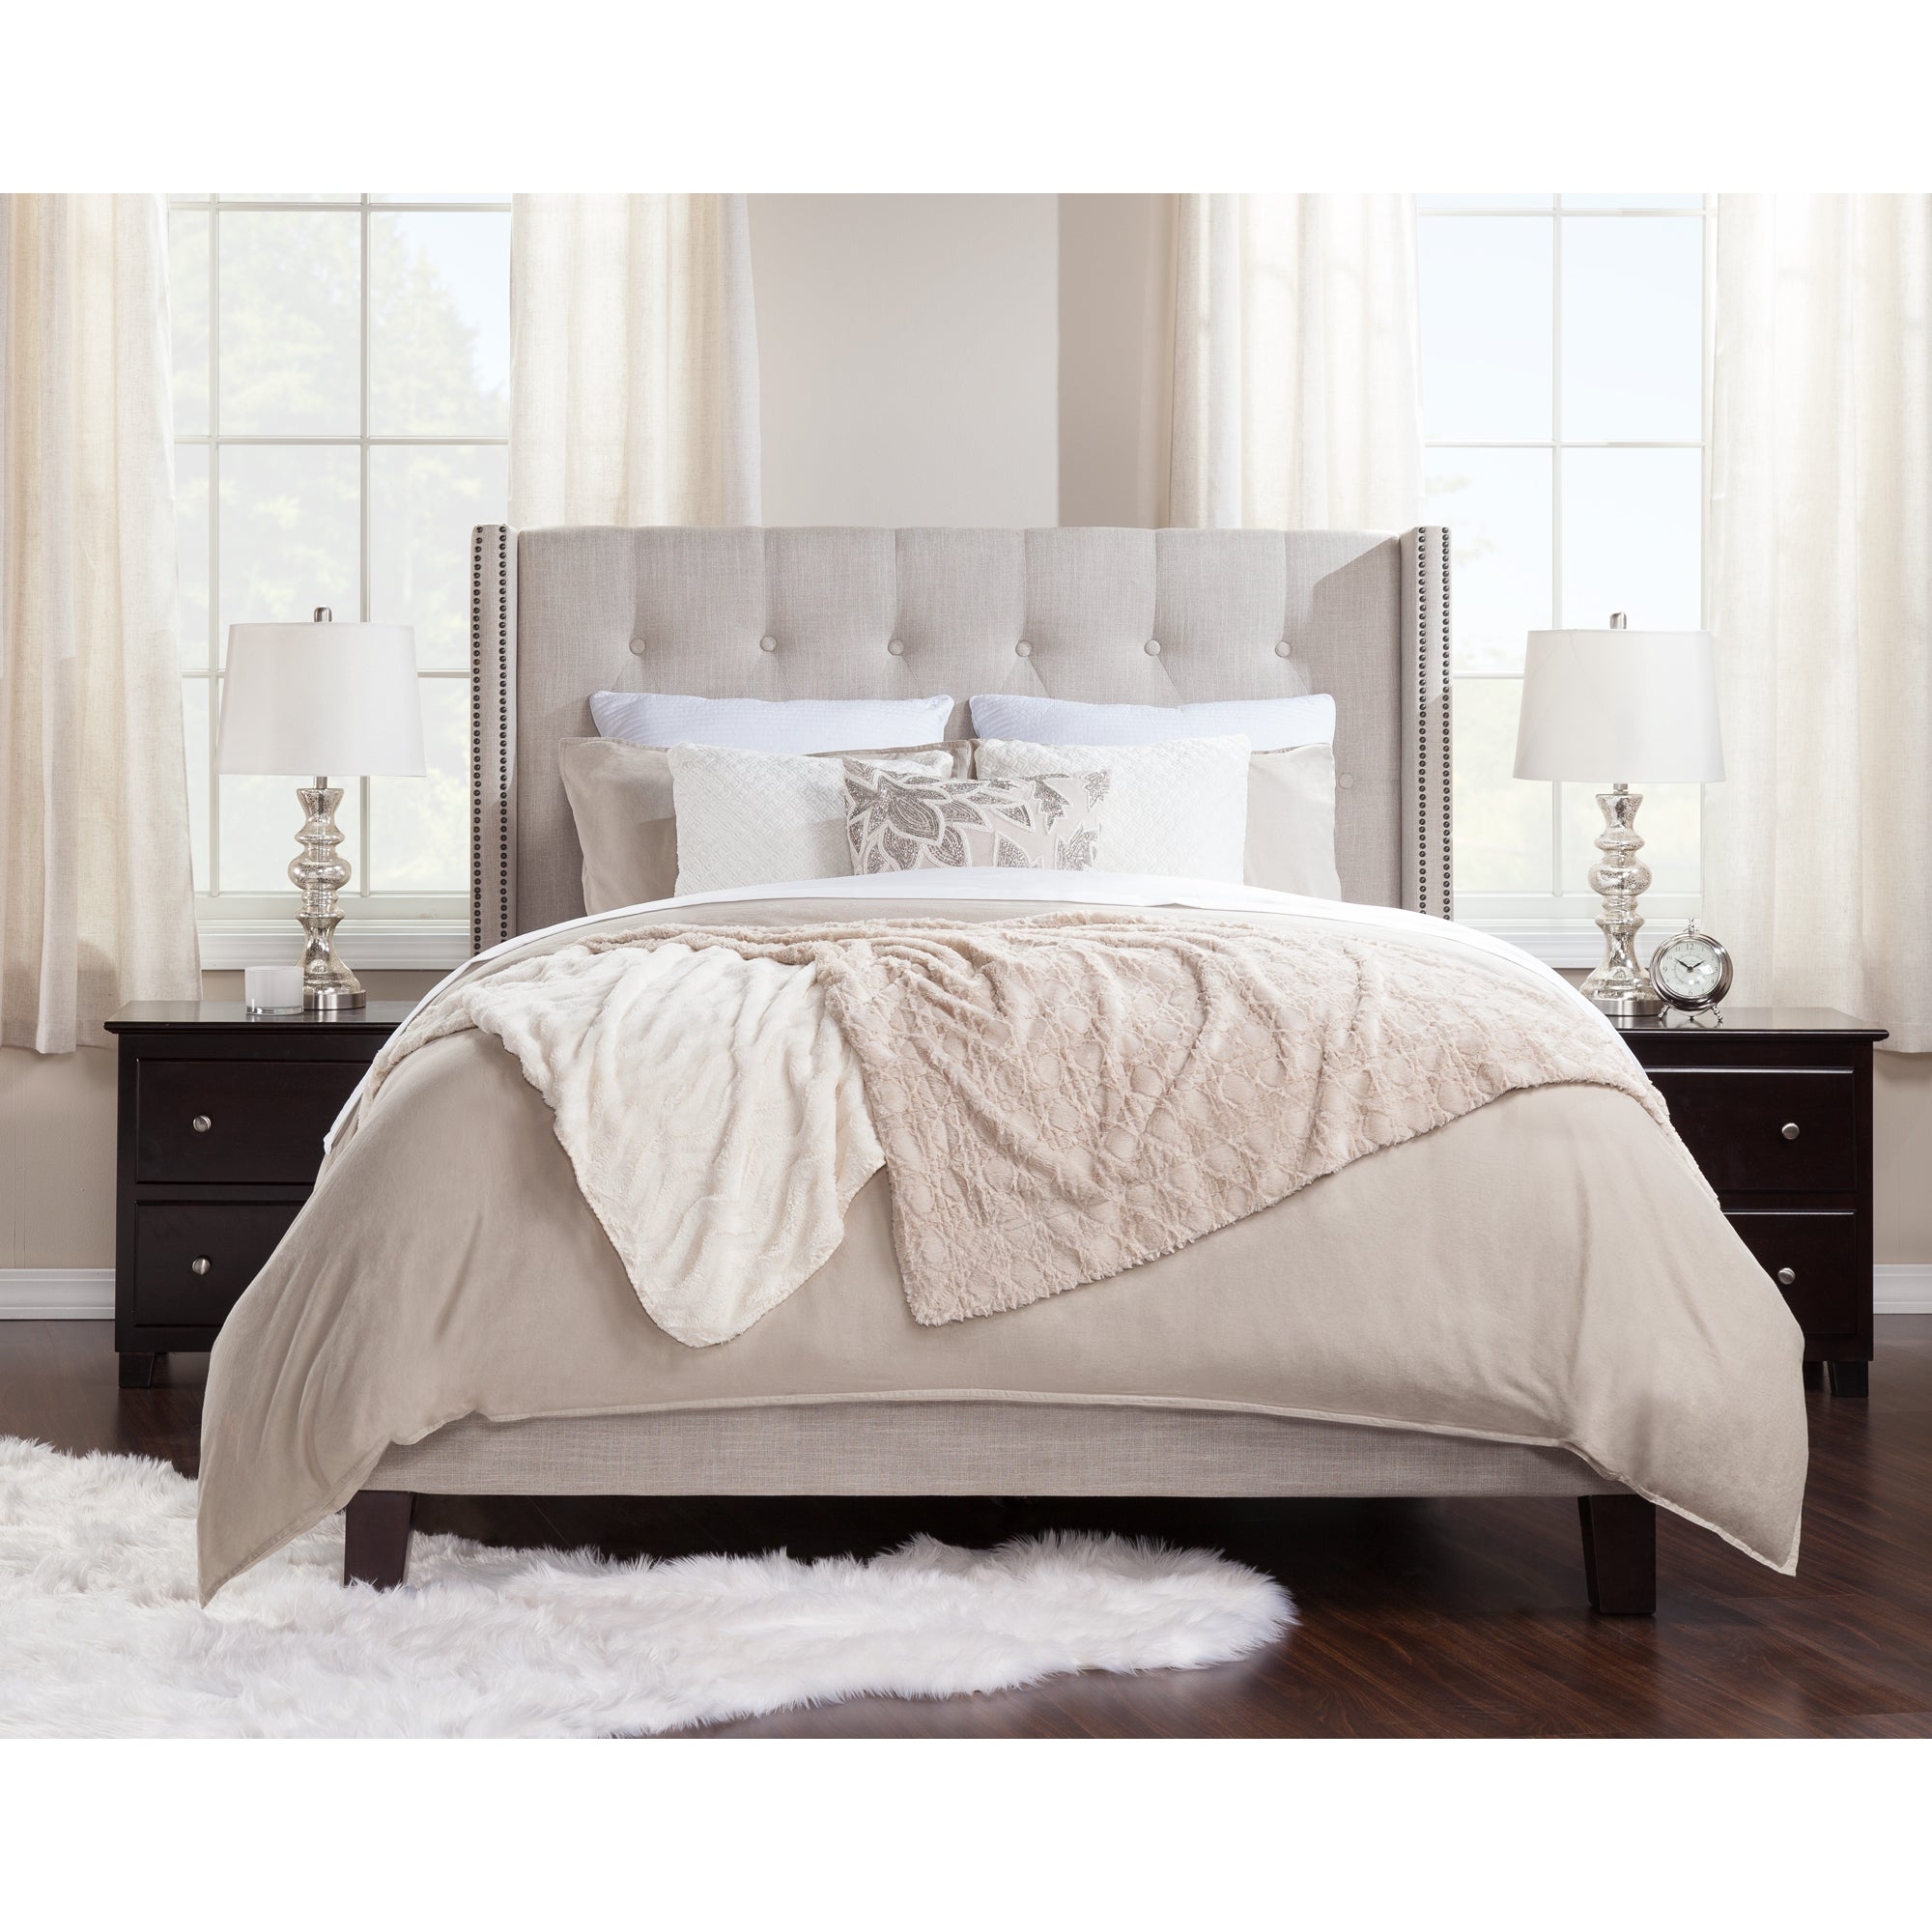 Hadleigh upholstered traditional bed queen size by atlantic furniture